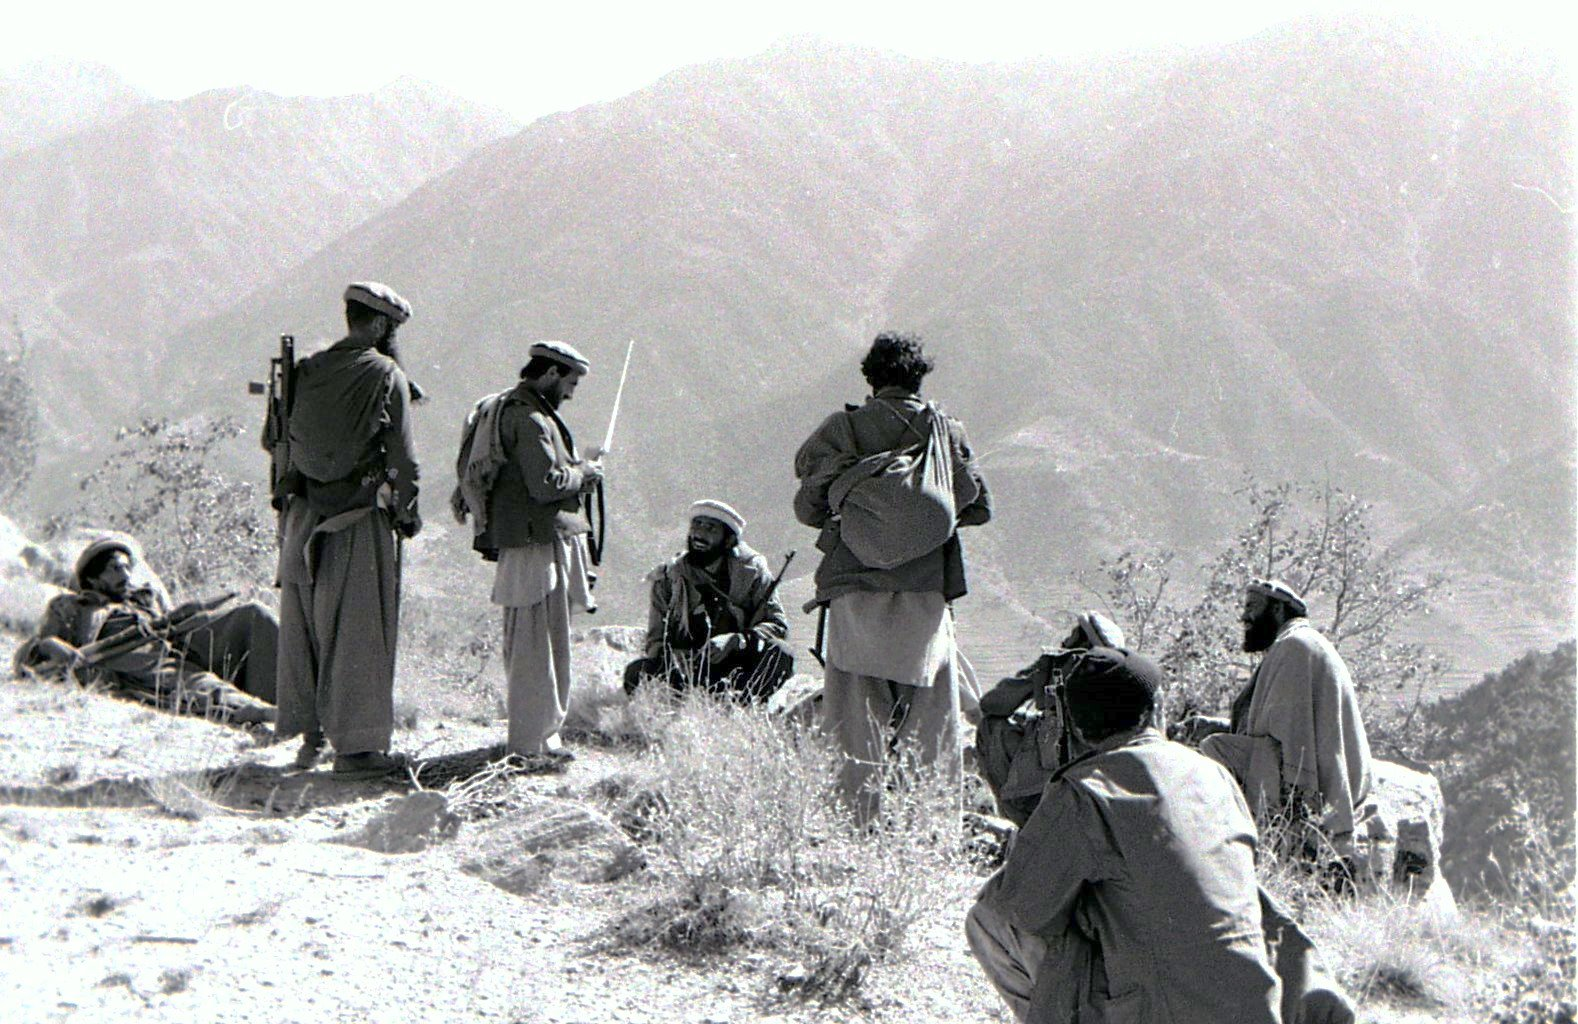 The Bloodiest chapter of Afghan History